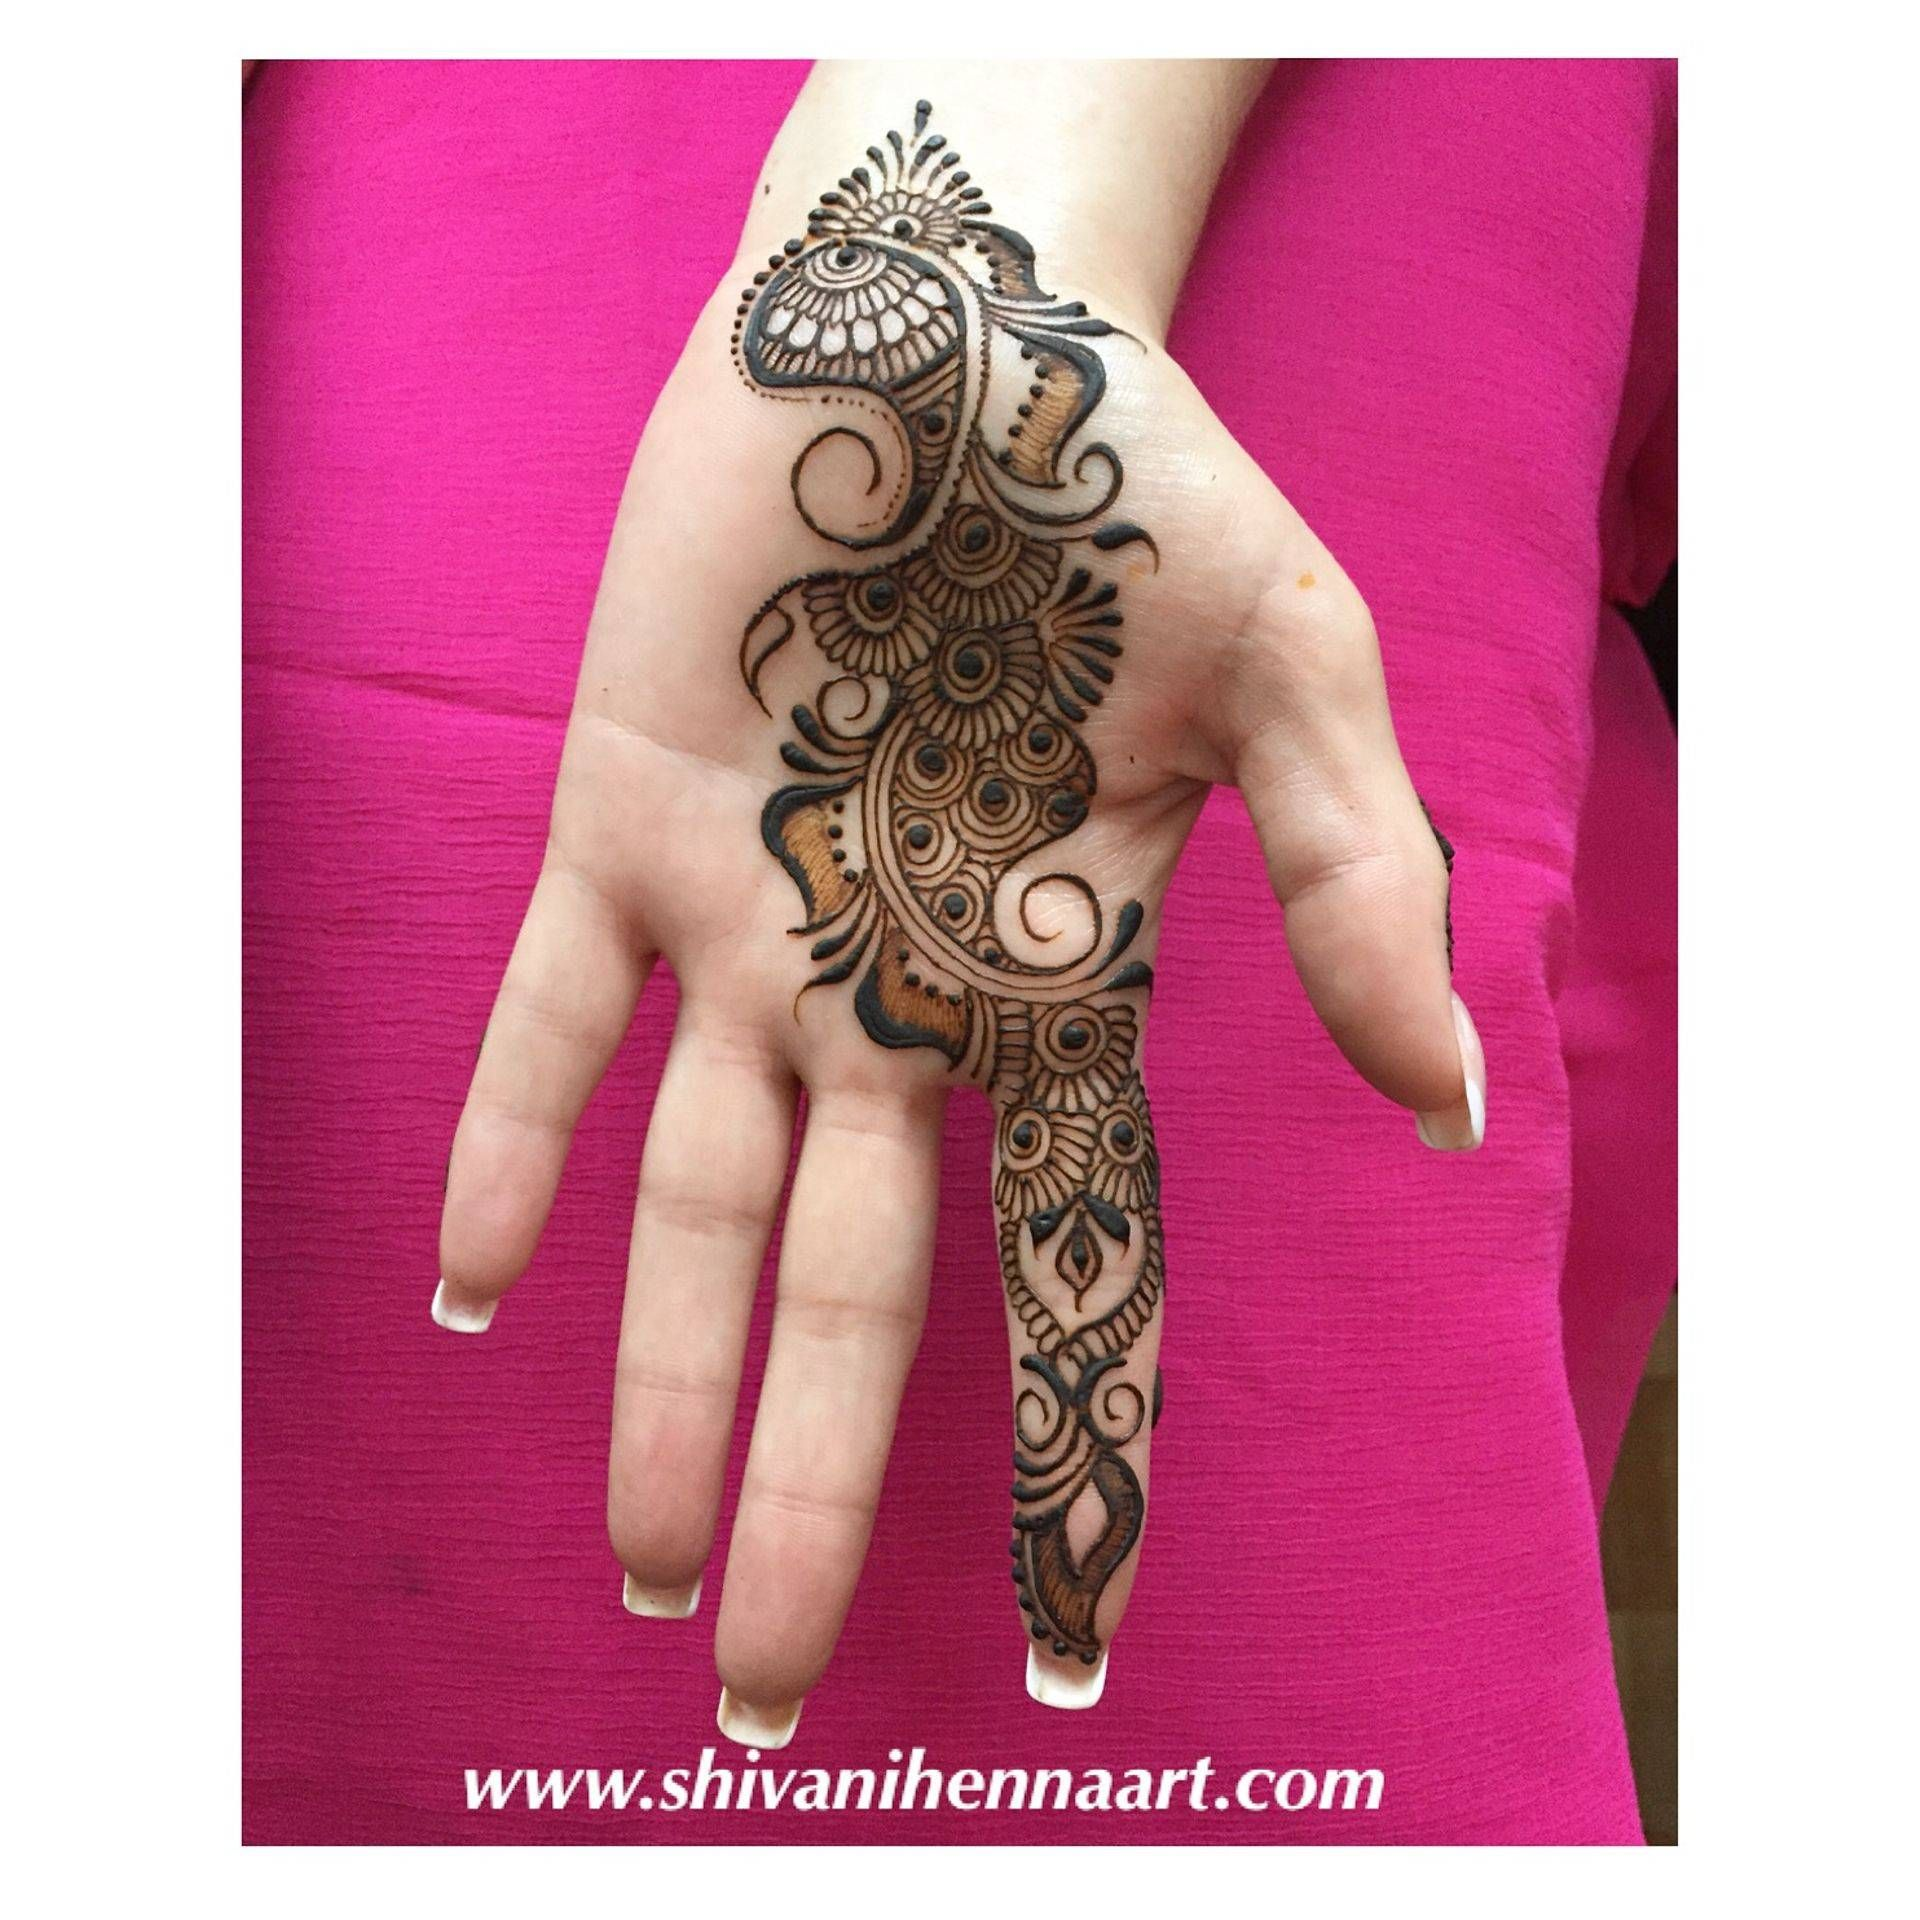 32 Latest Arabic Mehndi Designs To Inspire From